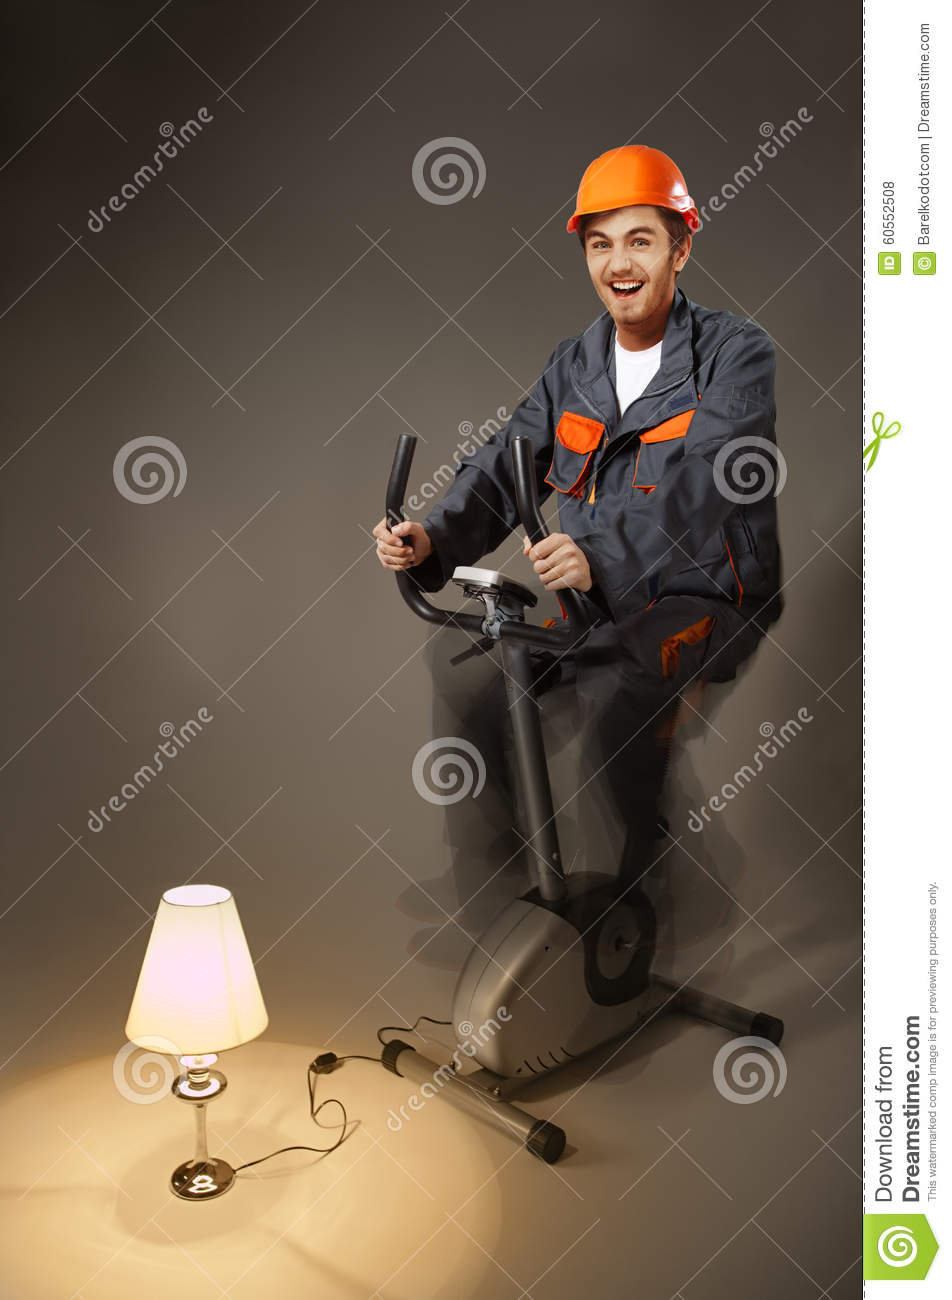 Funny electrician sitting on exercise bike generate electricity